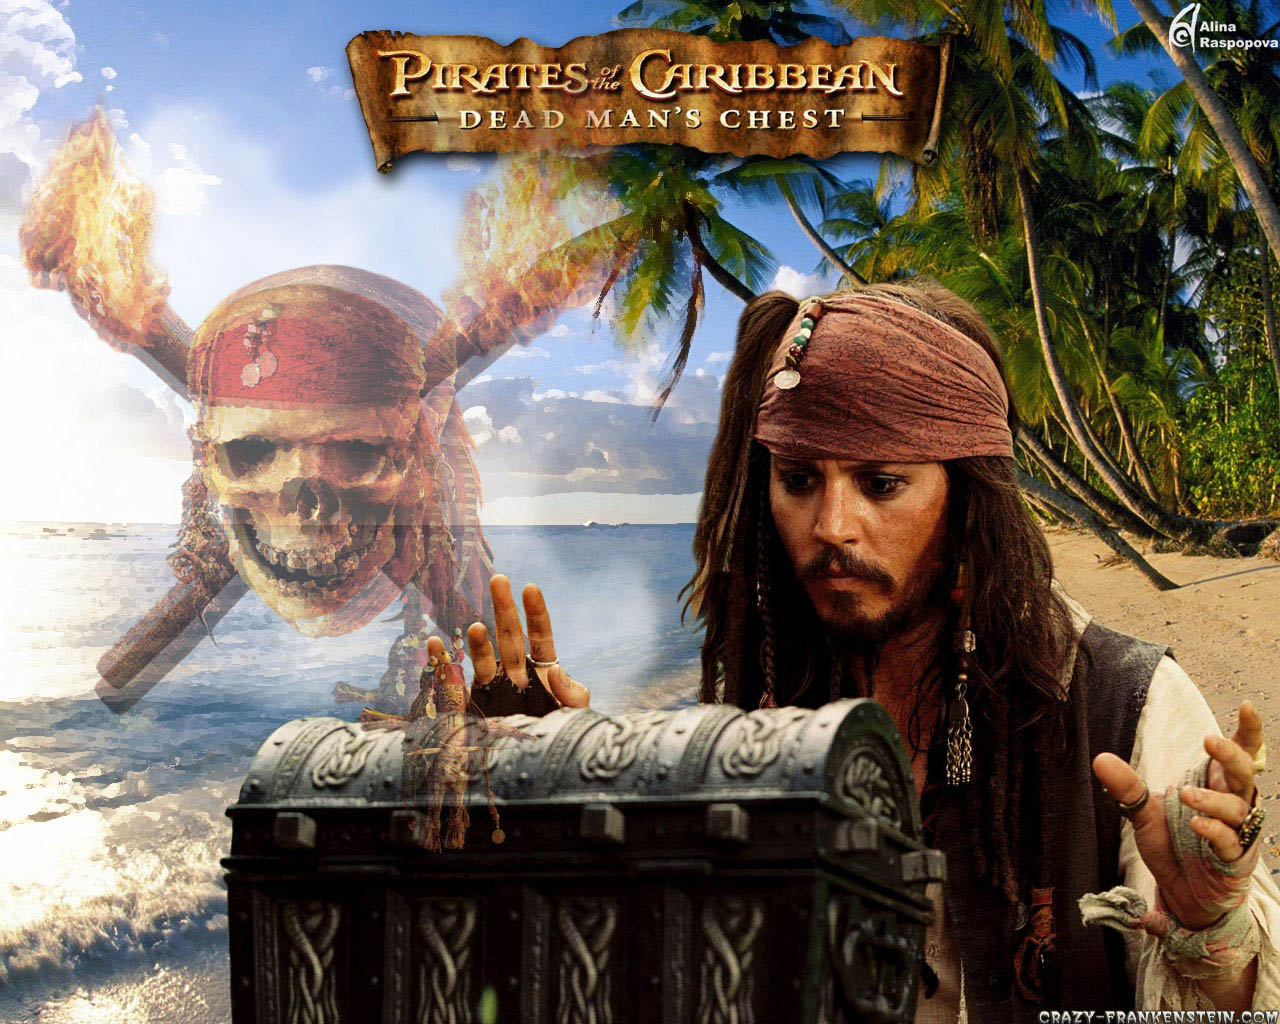 http://2.bp.blogspot.com/_e08tXXFmPM8/TSSwbkEsVeI/AAAAAAAAAR0/i8ymEYtvjsg/s1600/dead-mans-chest-pirates-of-the-caribbean-wallpaper.jpg